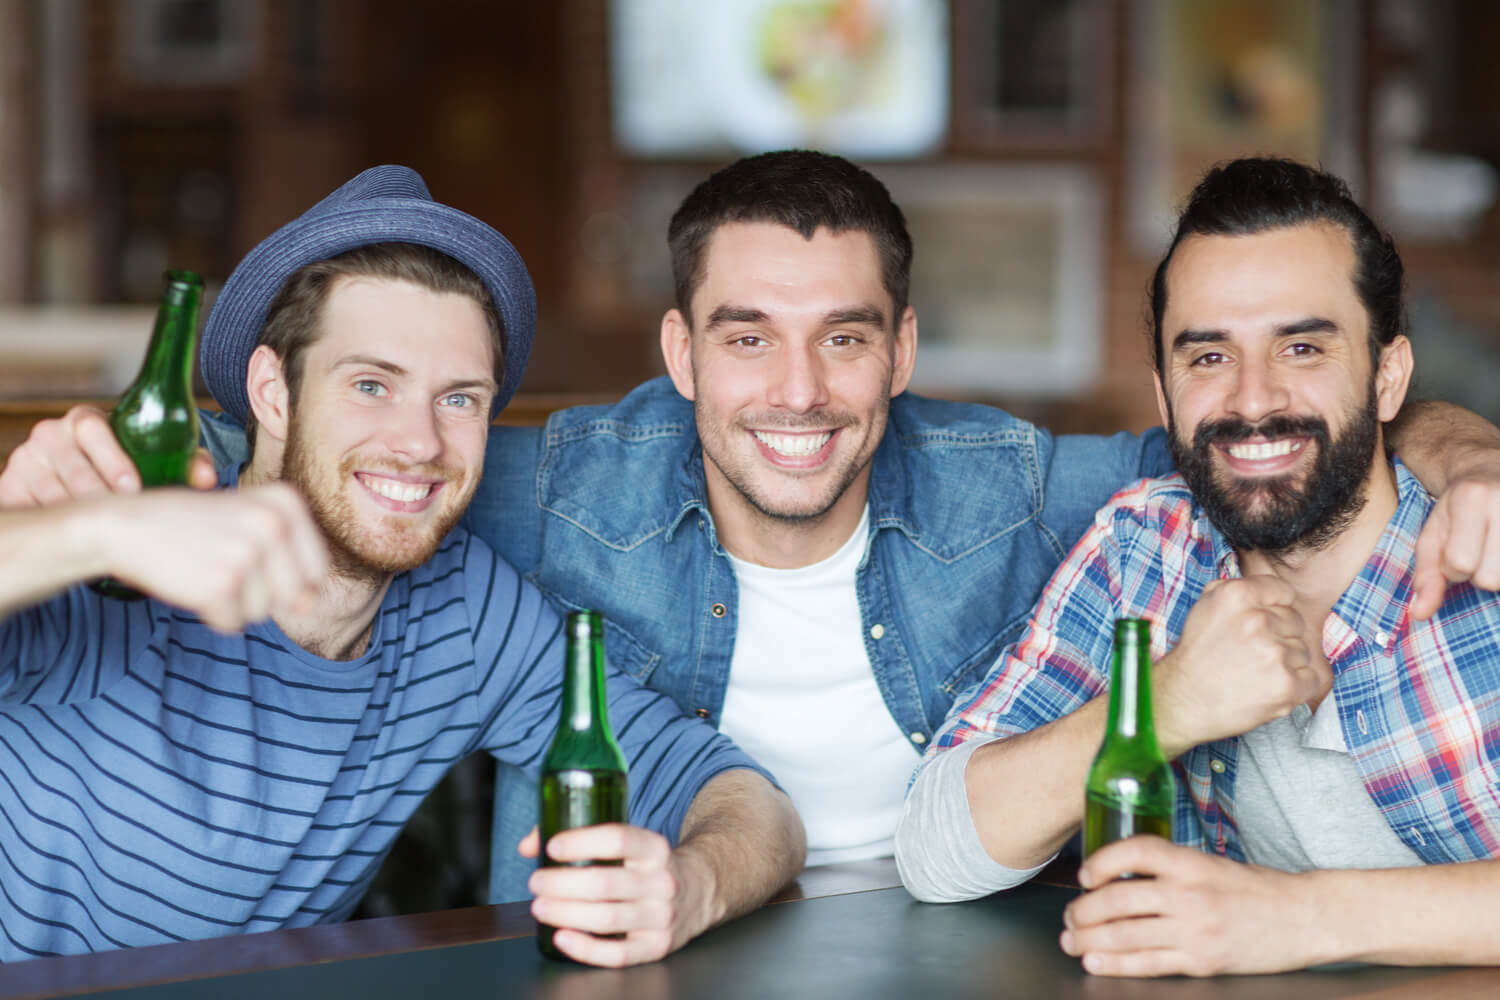 A trio of young men smiles into the camera before commencing their Wisconsin Dells bachelor party.